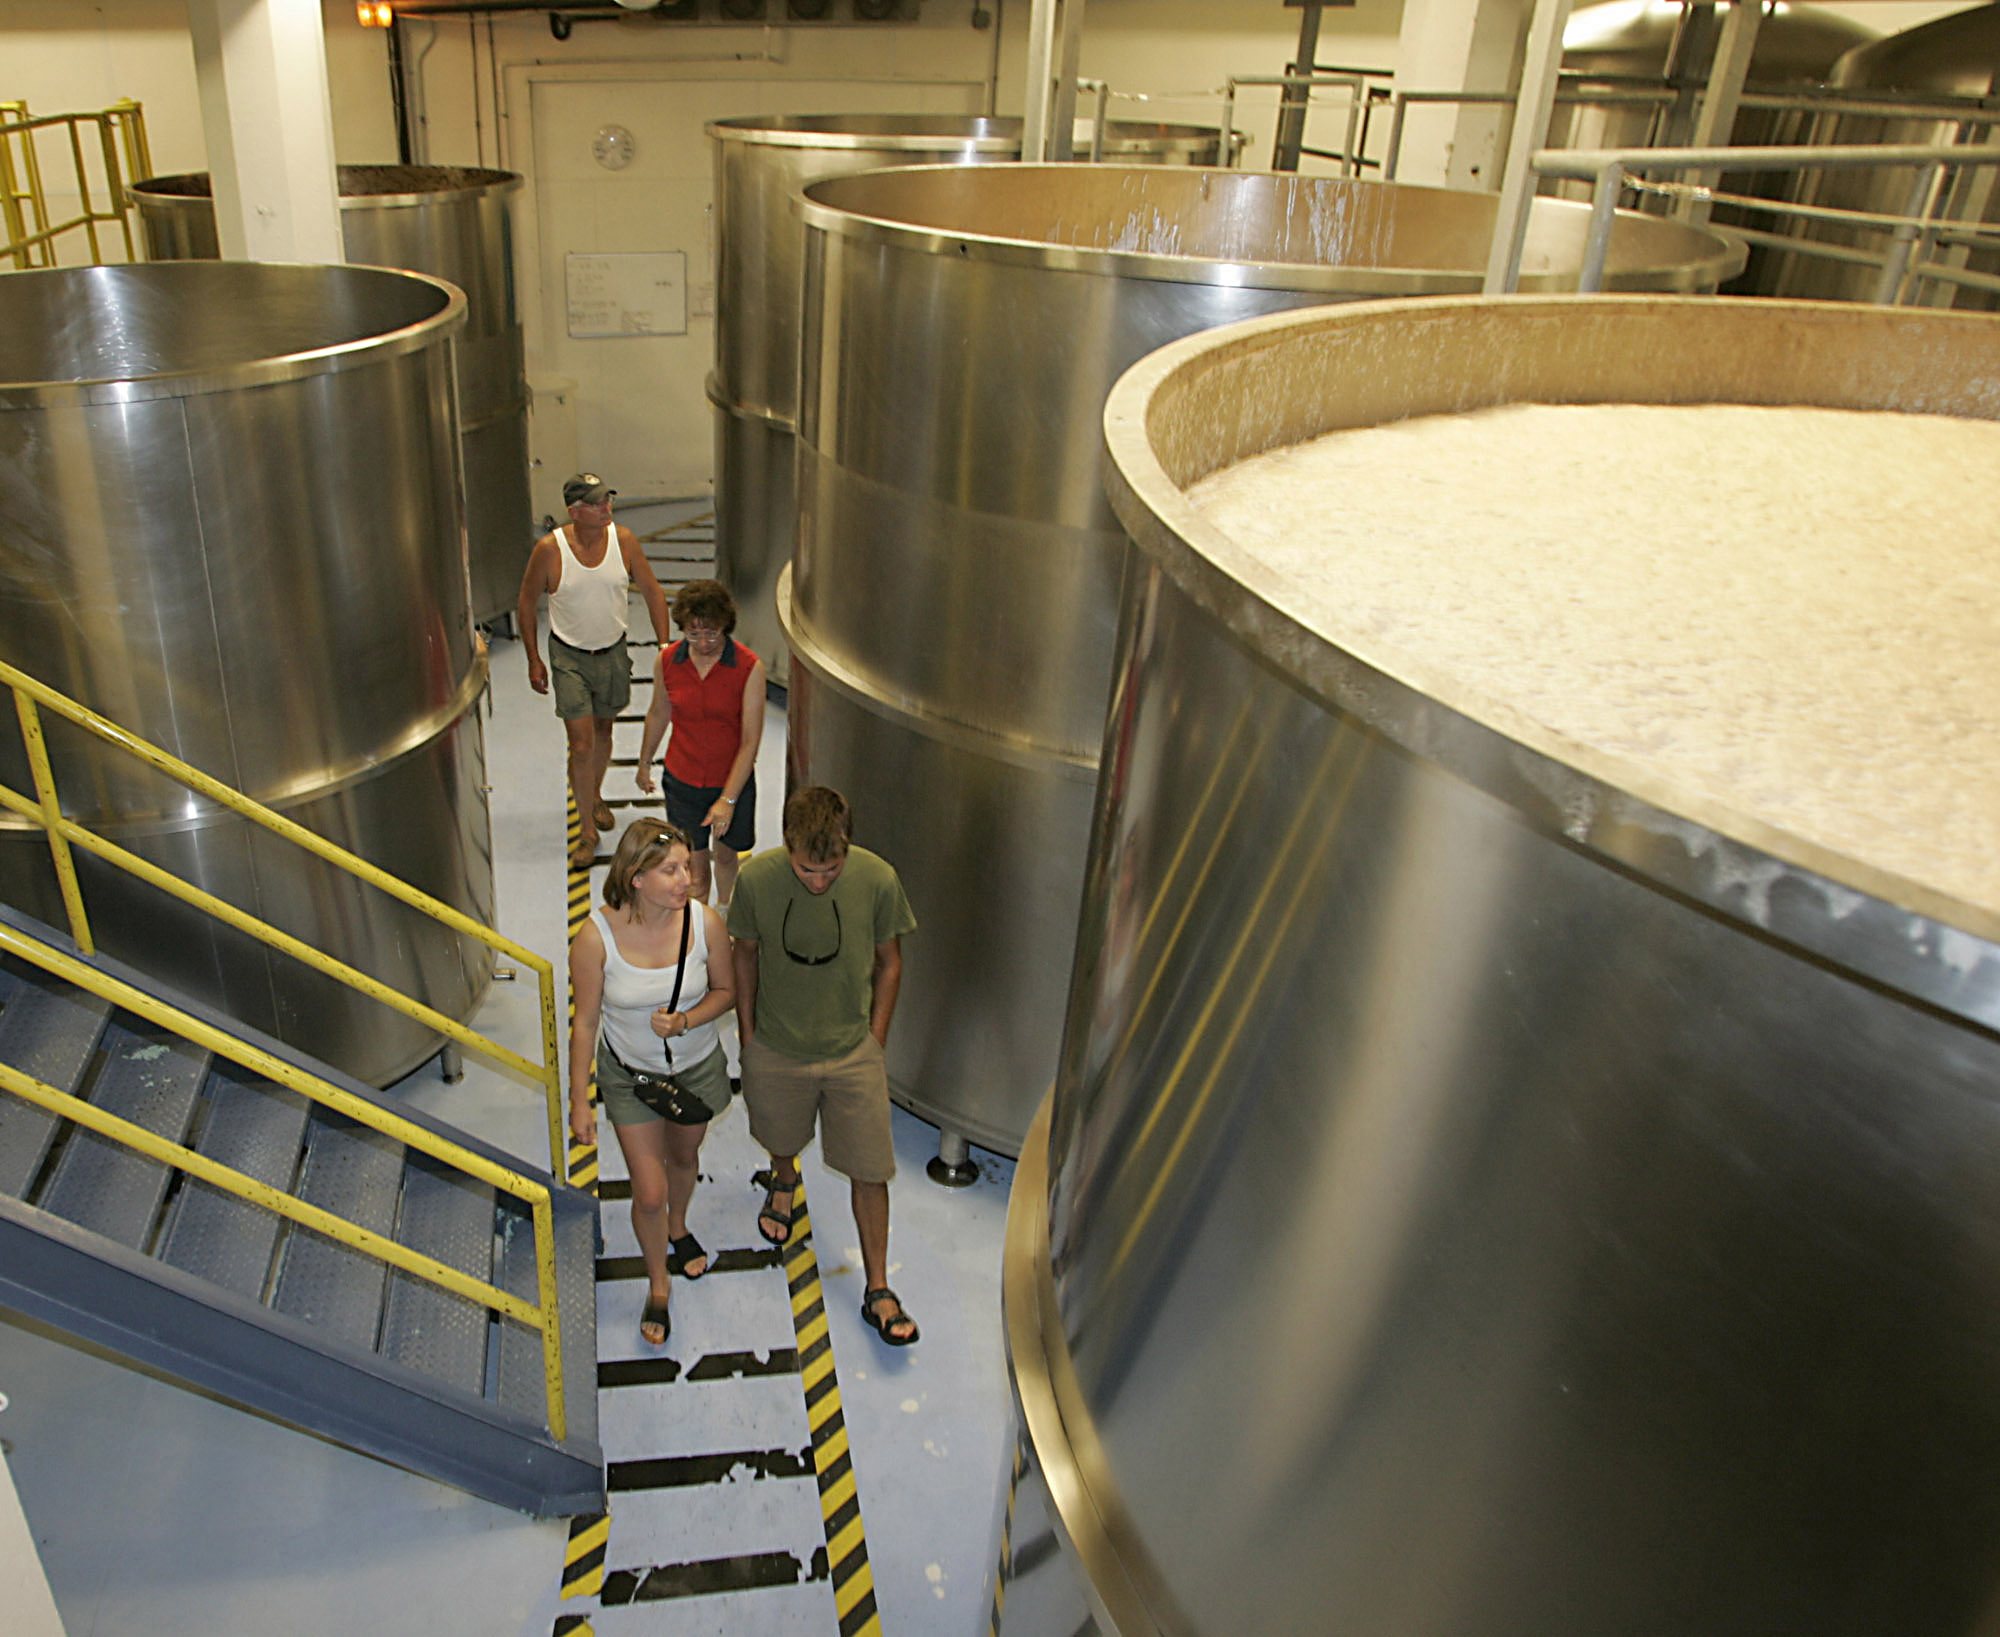 Tours, Tastings at Maine Microbreweries